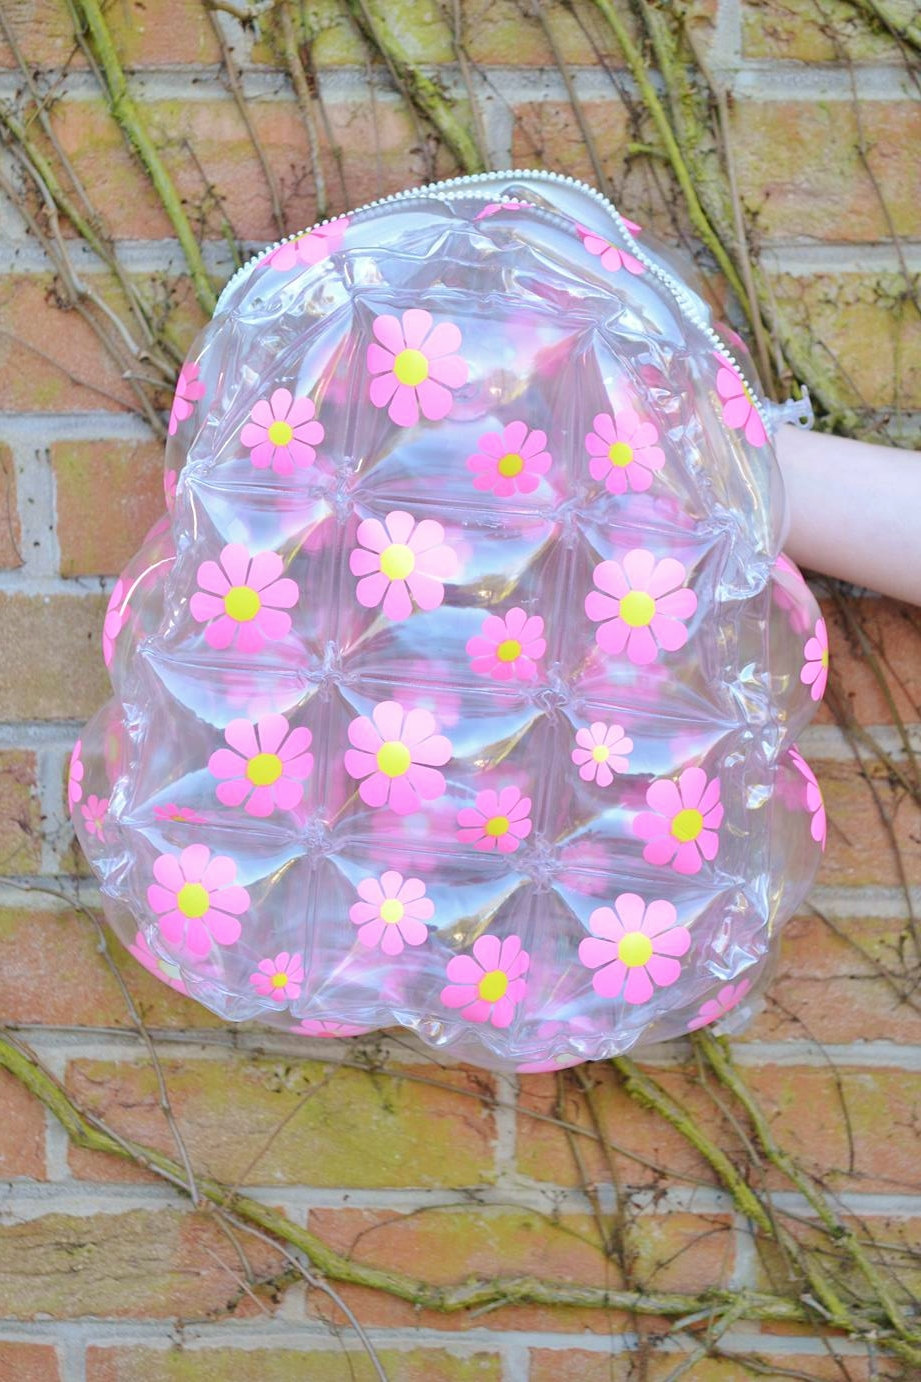 Inflatable furniture 90s - Pink 90s Daisy Flower Floral Club Kid See Through Clear Plastic Blow Up Inflatable Bubble Bag Rucksack Backpack